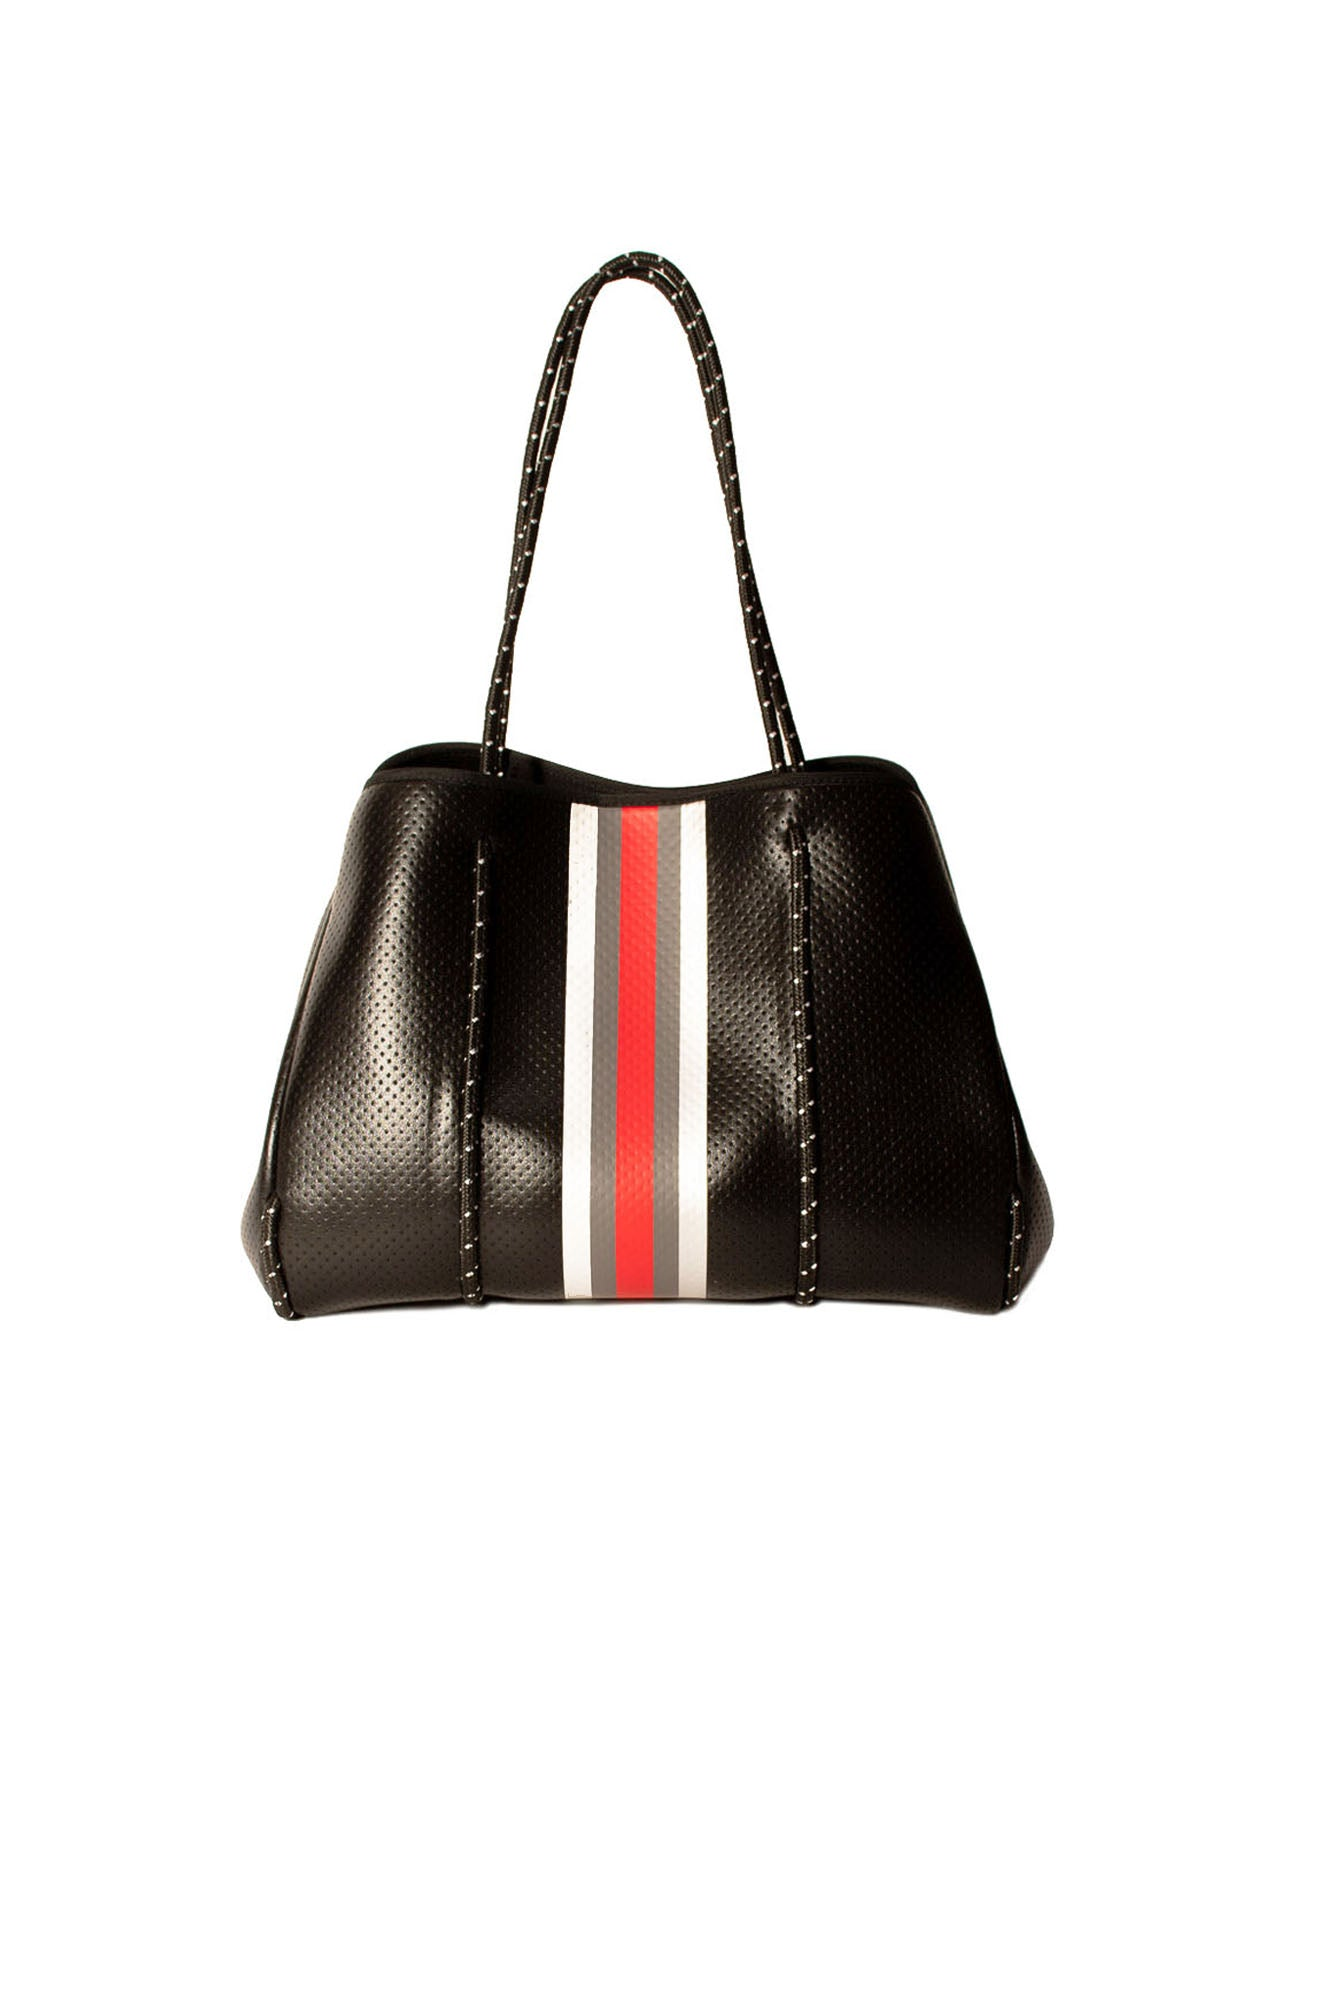 Haute Shore - Greyson Uptown2 Neoprene Tote Bag w/Zipper Wristlet Inside (uptown2, Black Coated w/Silver Charcoal Red Stripe)